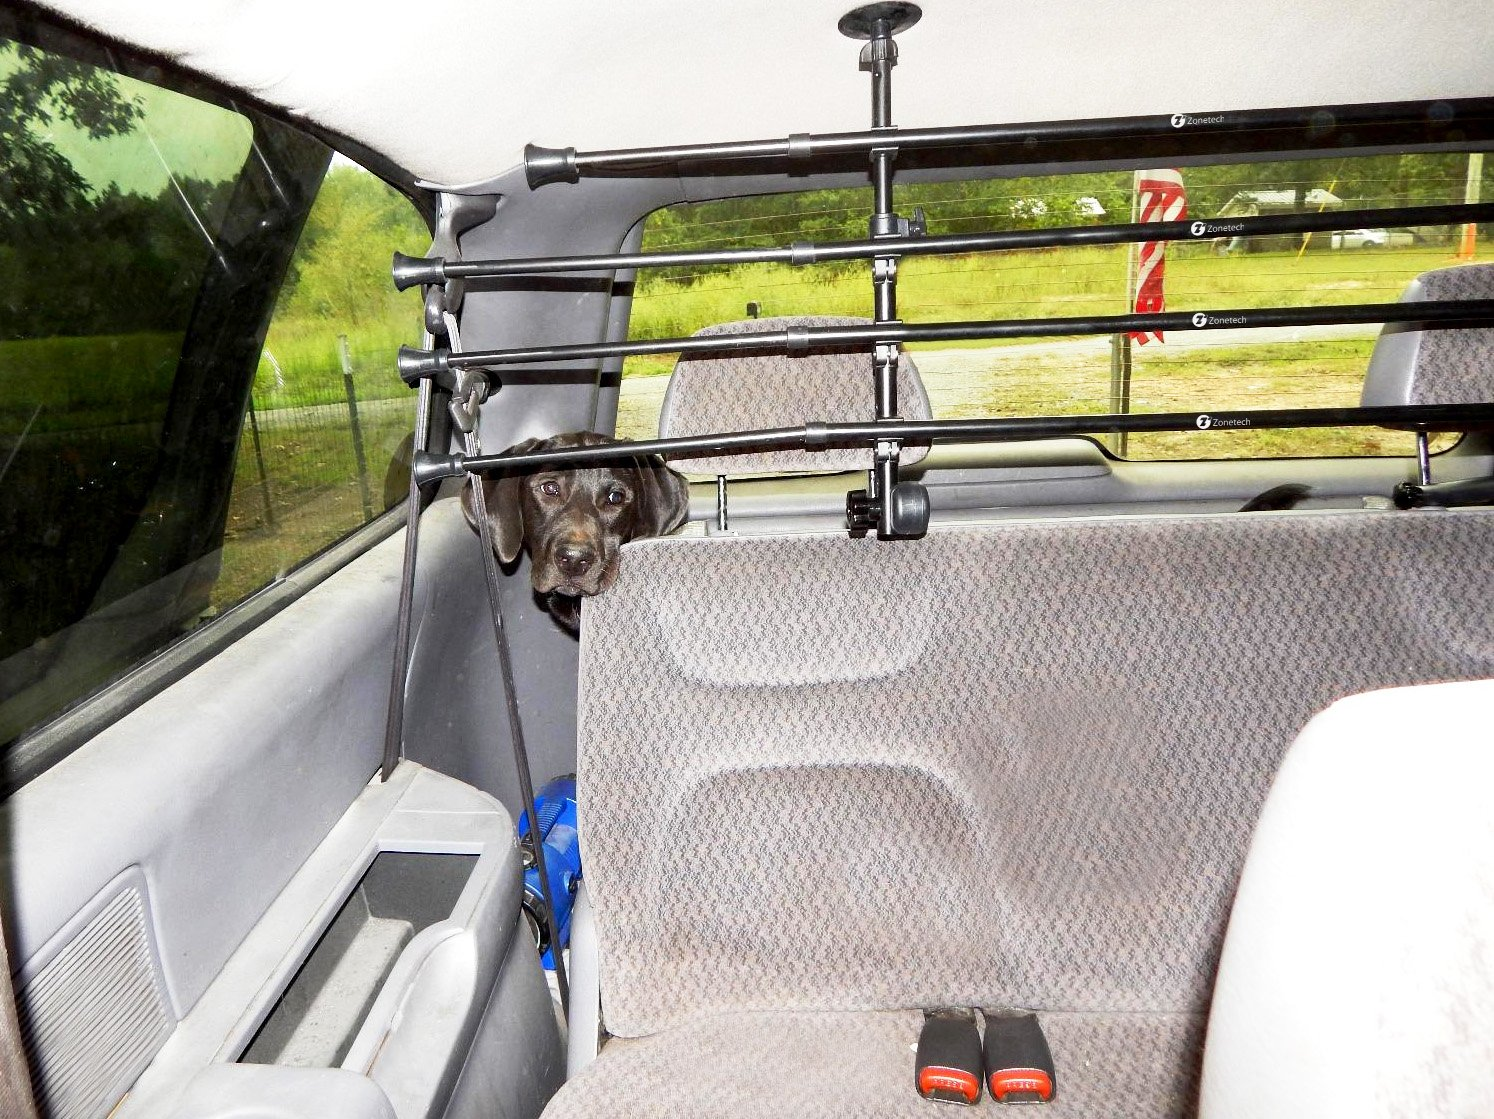 Zone Tech Universal Pet Barrier - Adjustable Mounted Headrest Barrier for Pet Automotive Safety by Zonetech (Image #2)